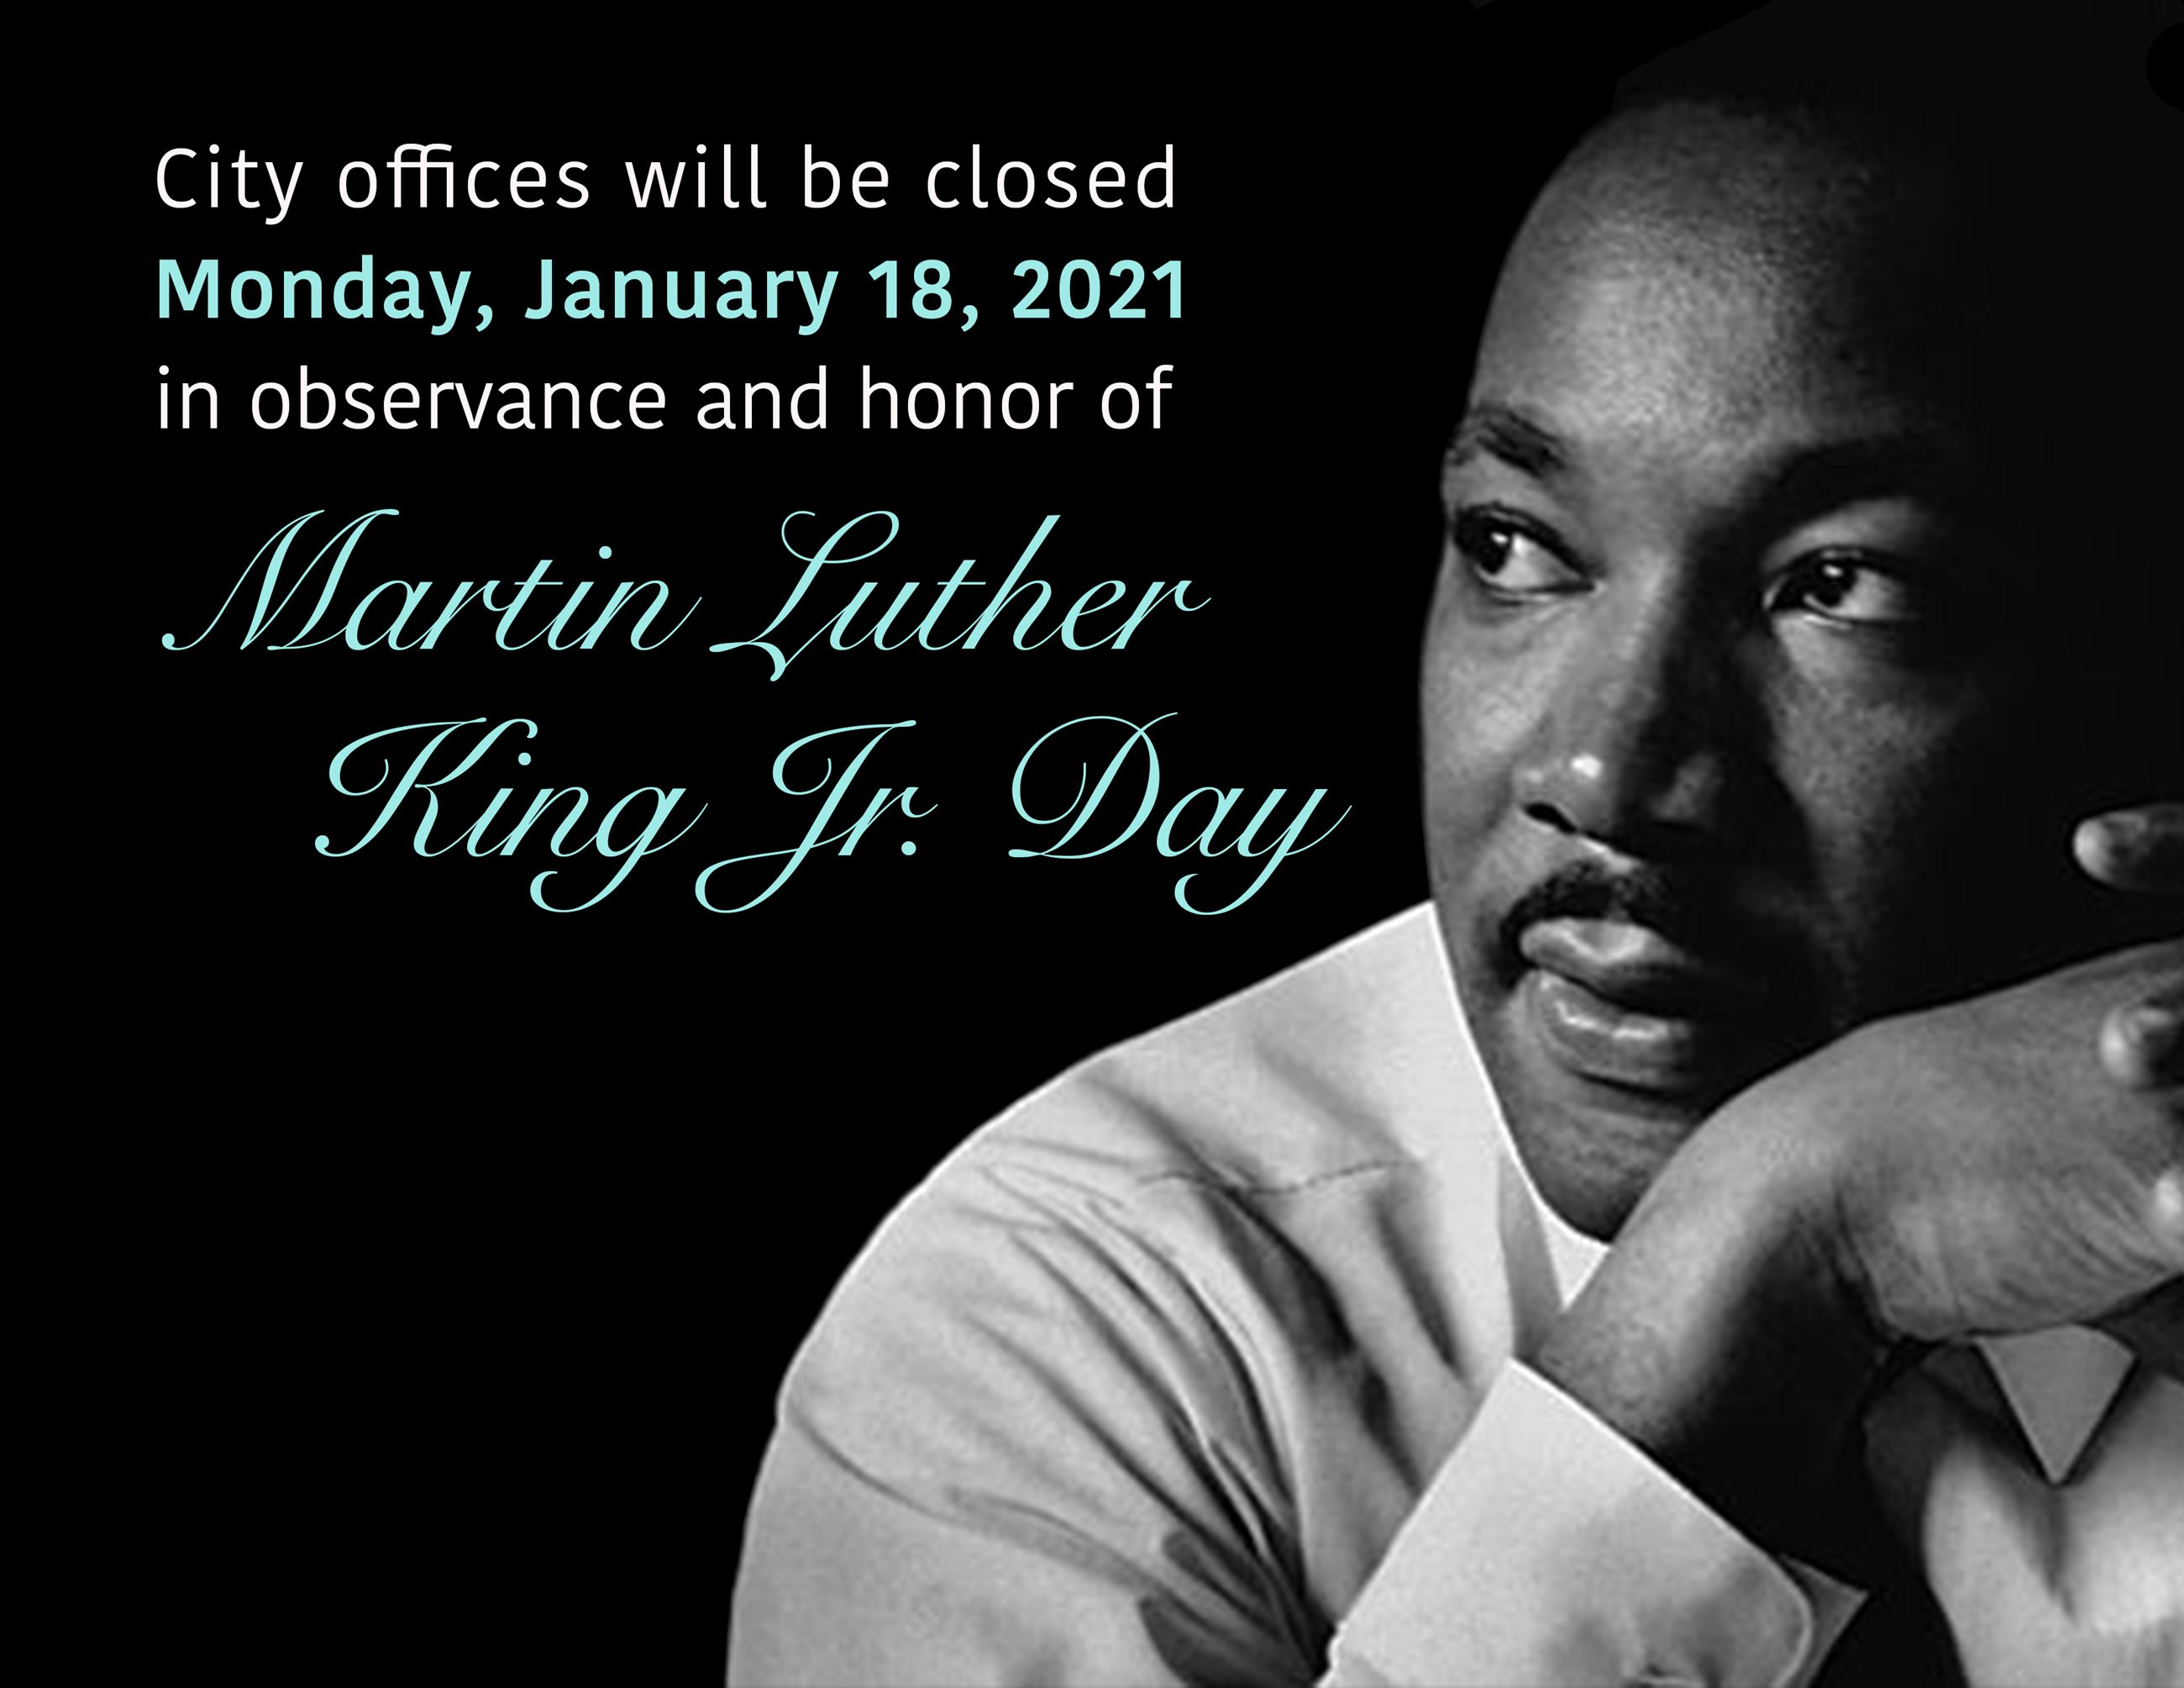 MLK_closure_2021